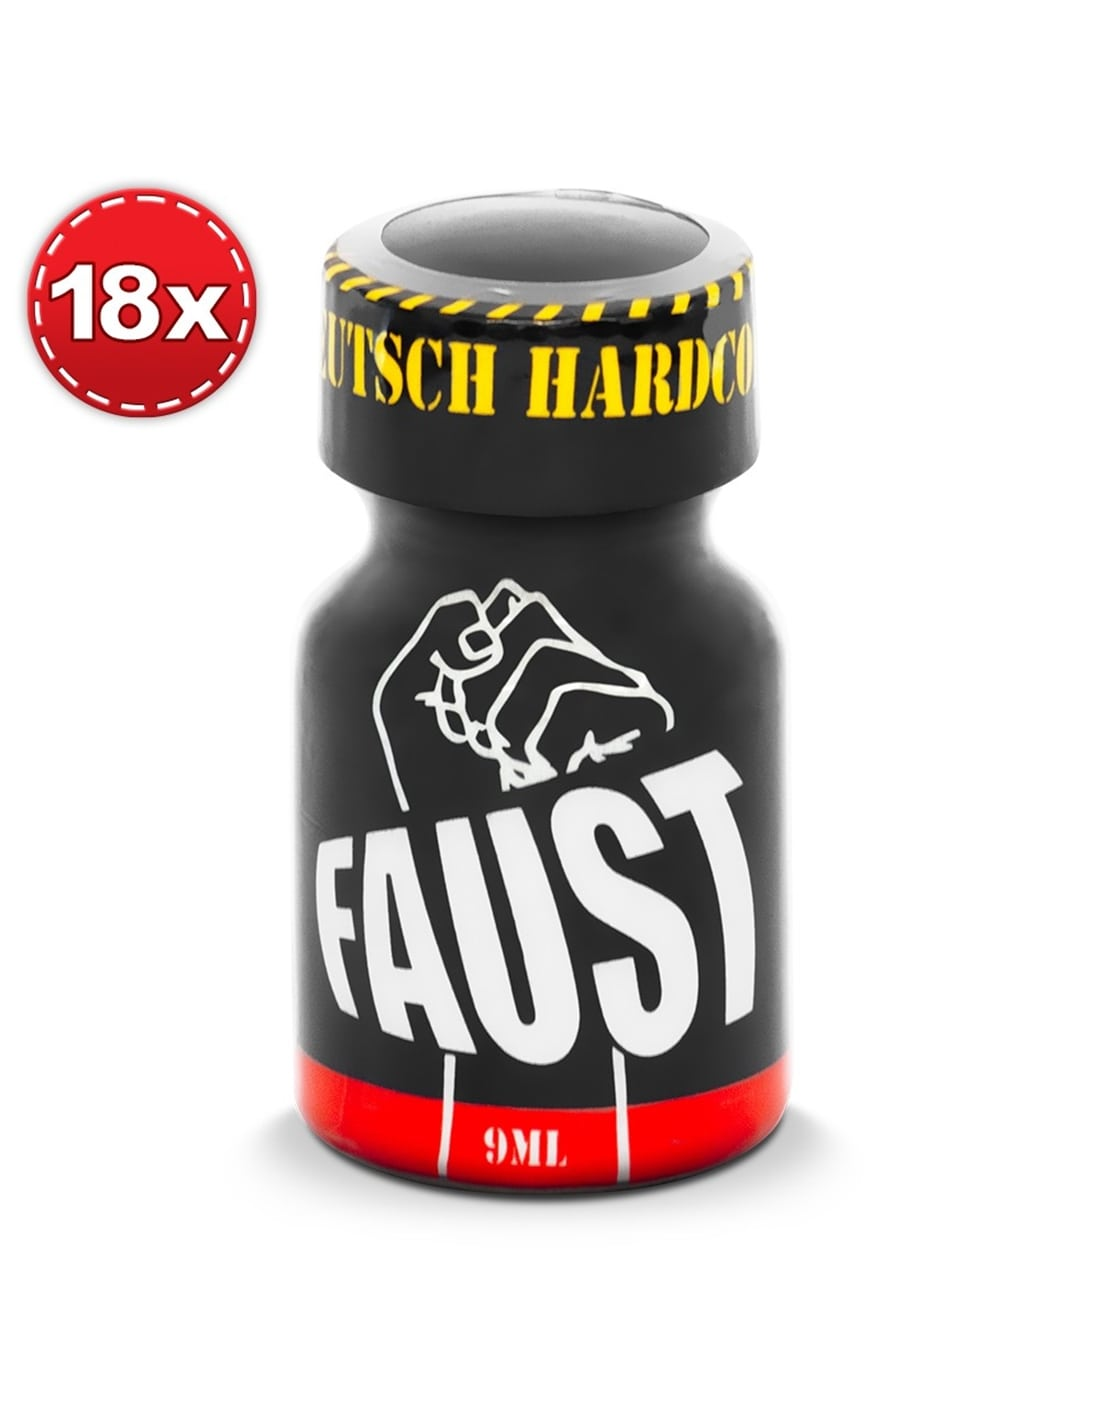 Pack com 18 Faust Poppers - 9ml - PR2010334024